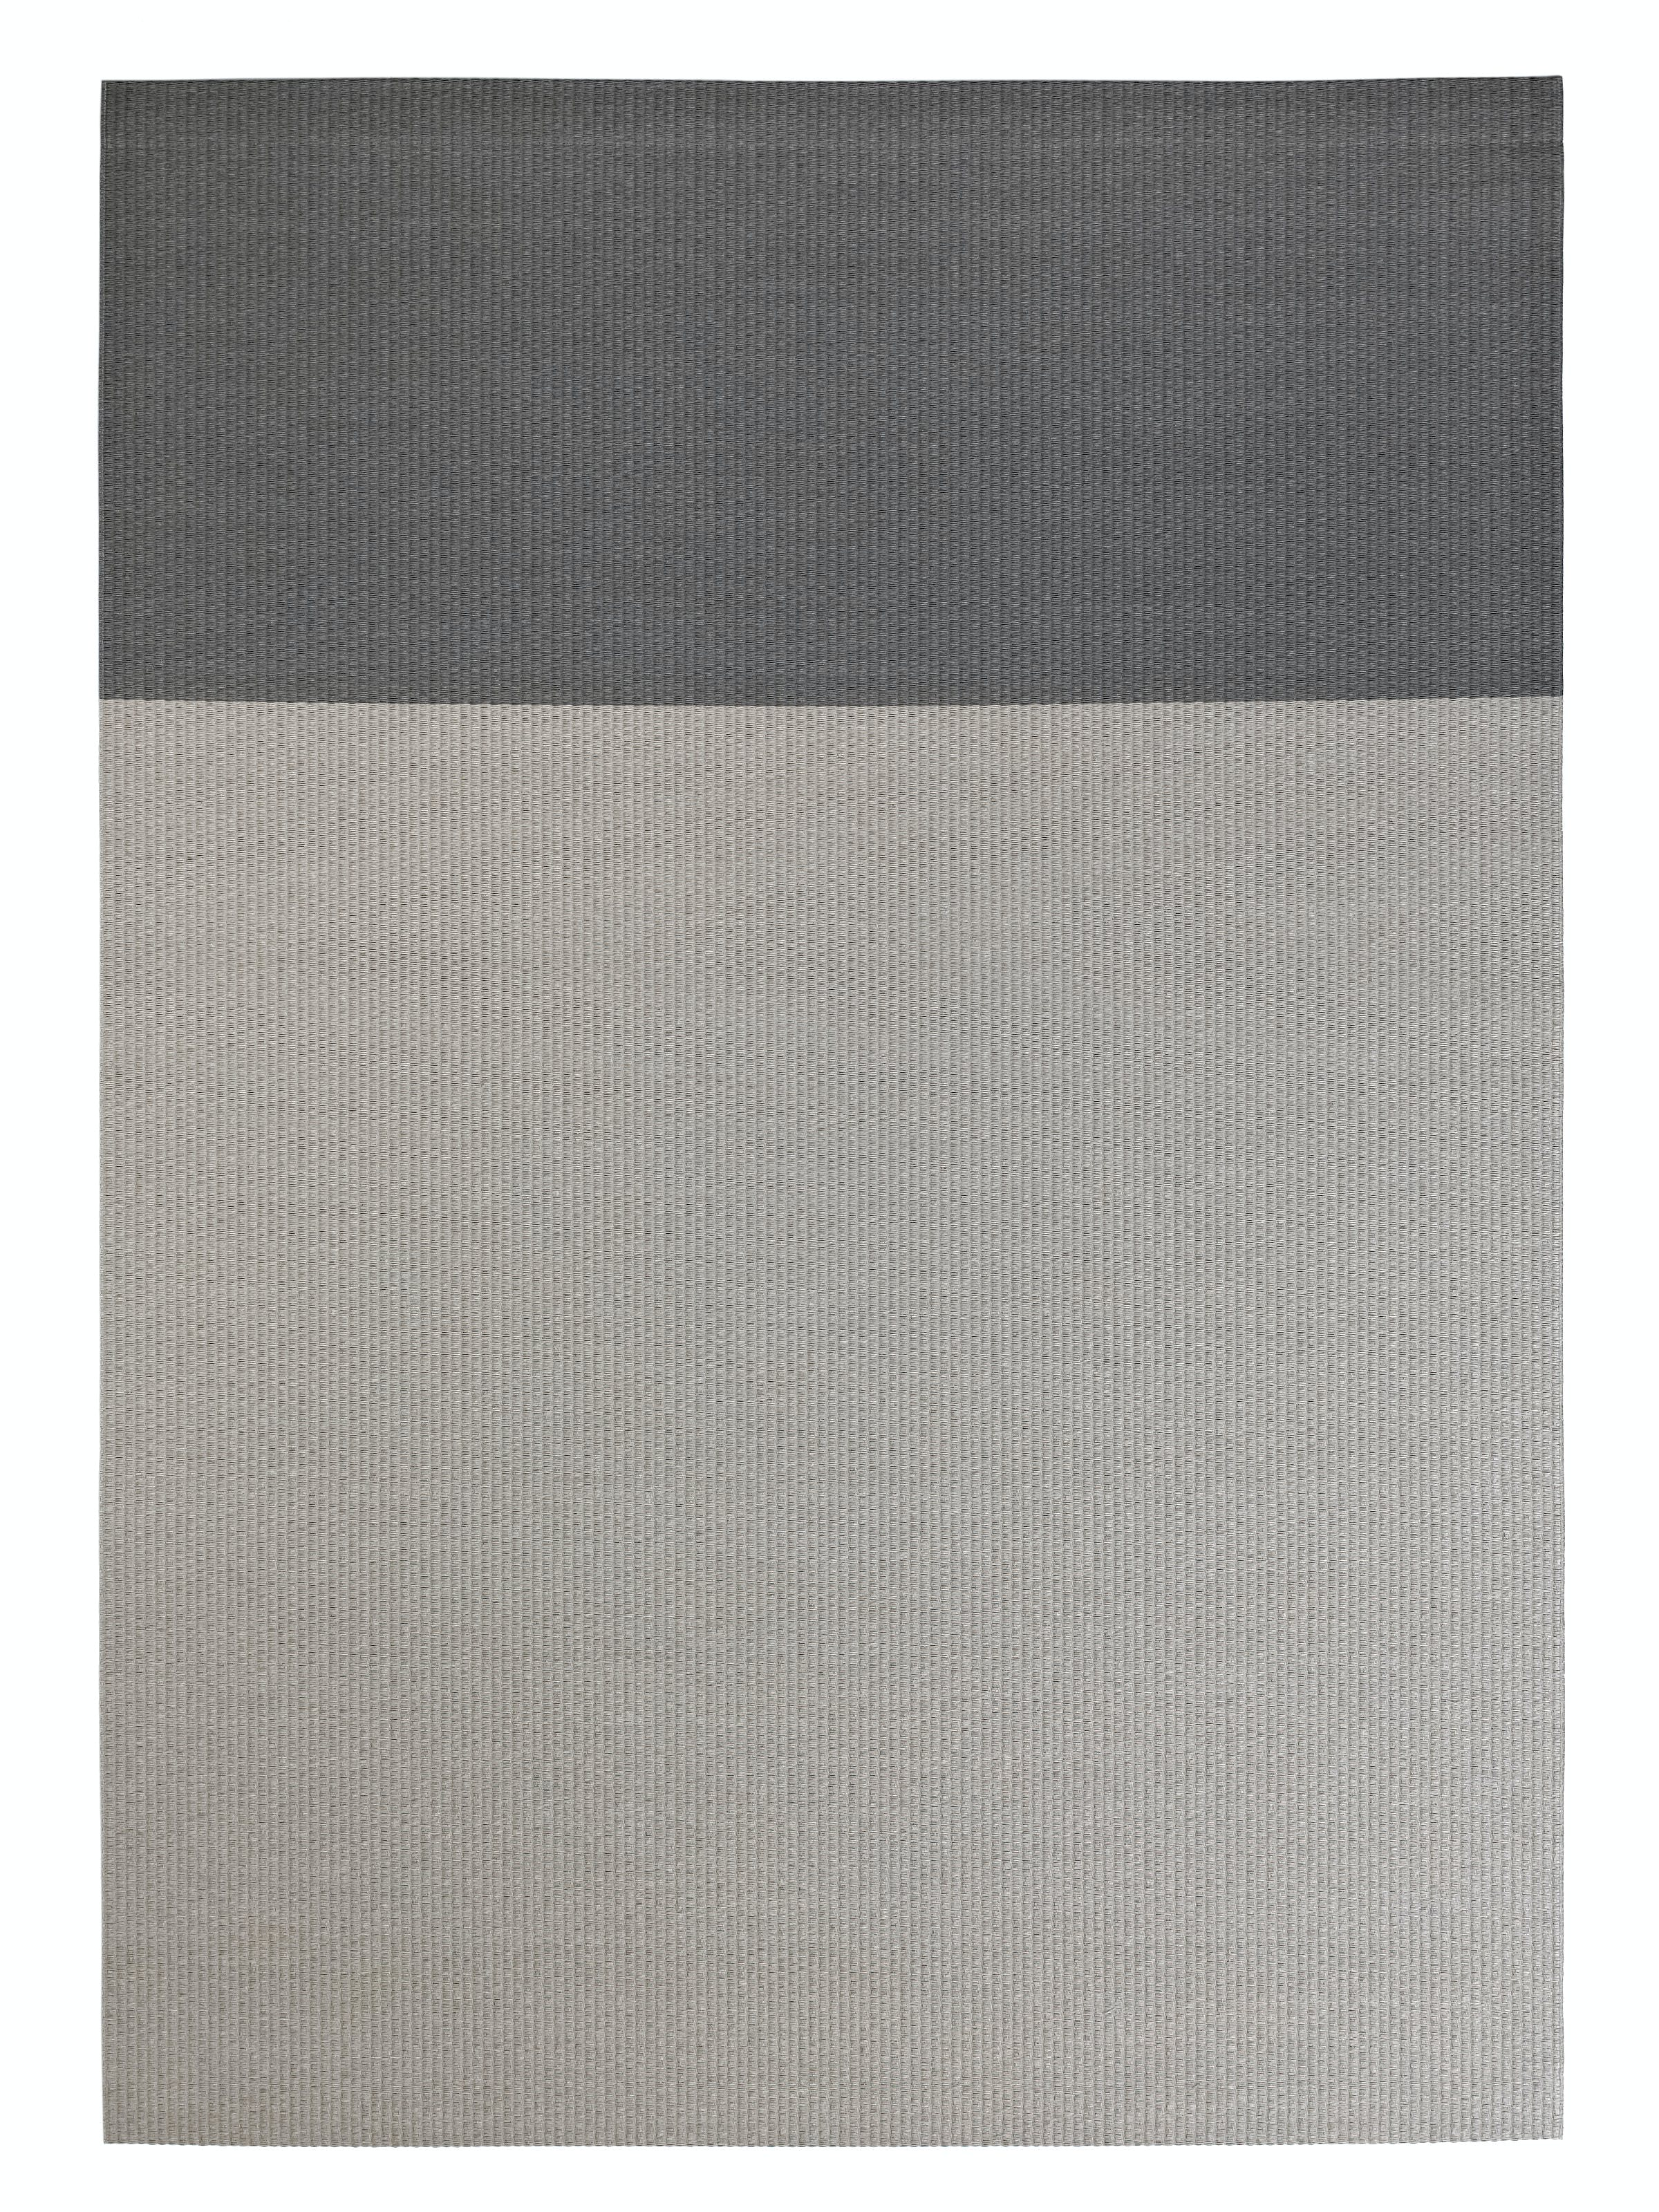 1383040 Beach Light Grey Graphite